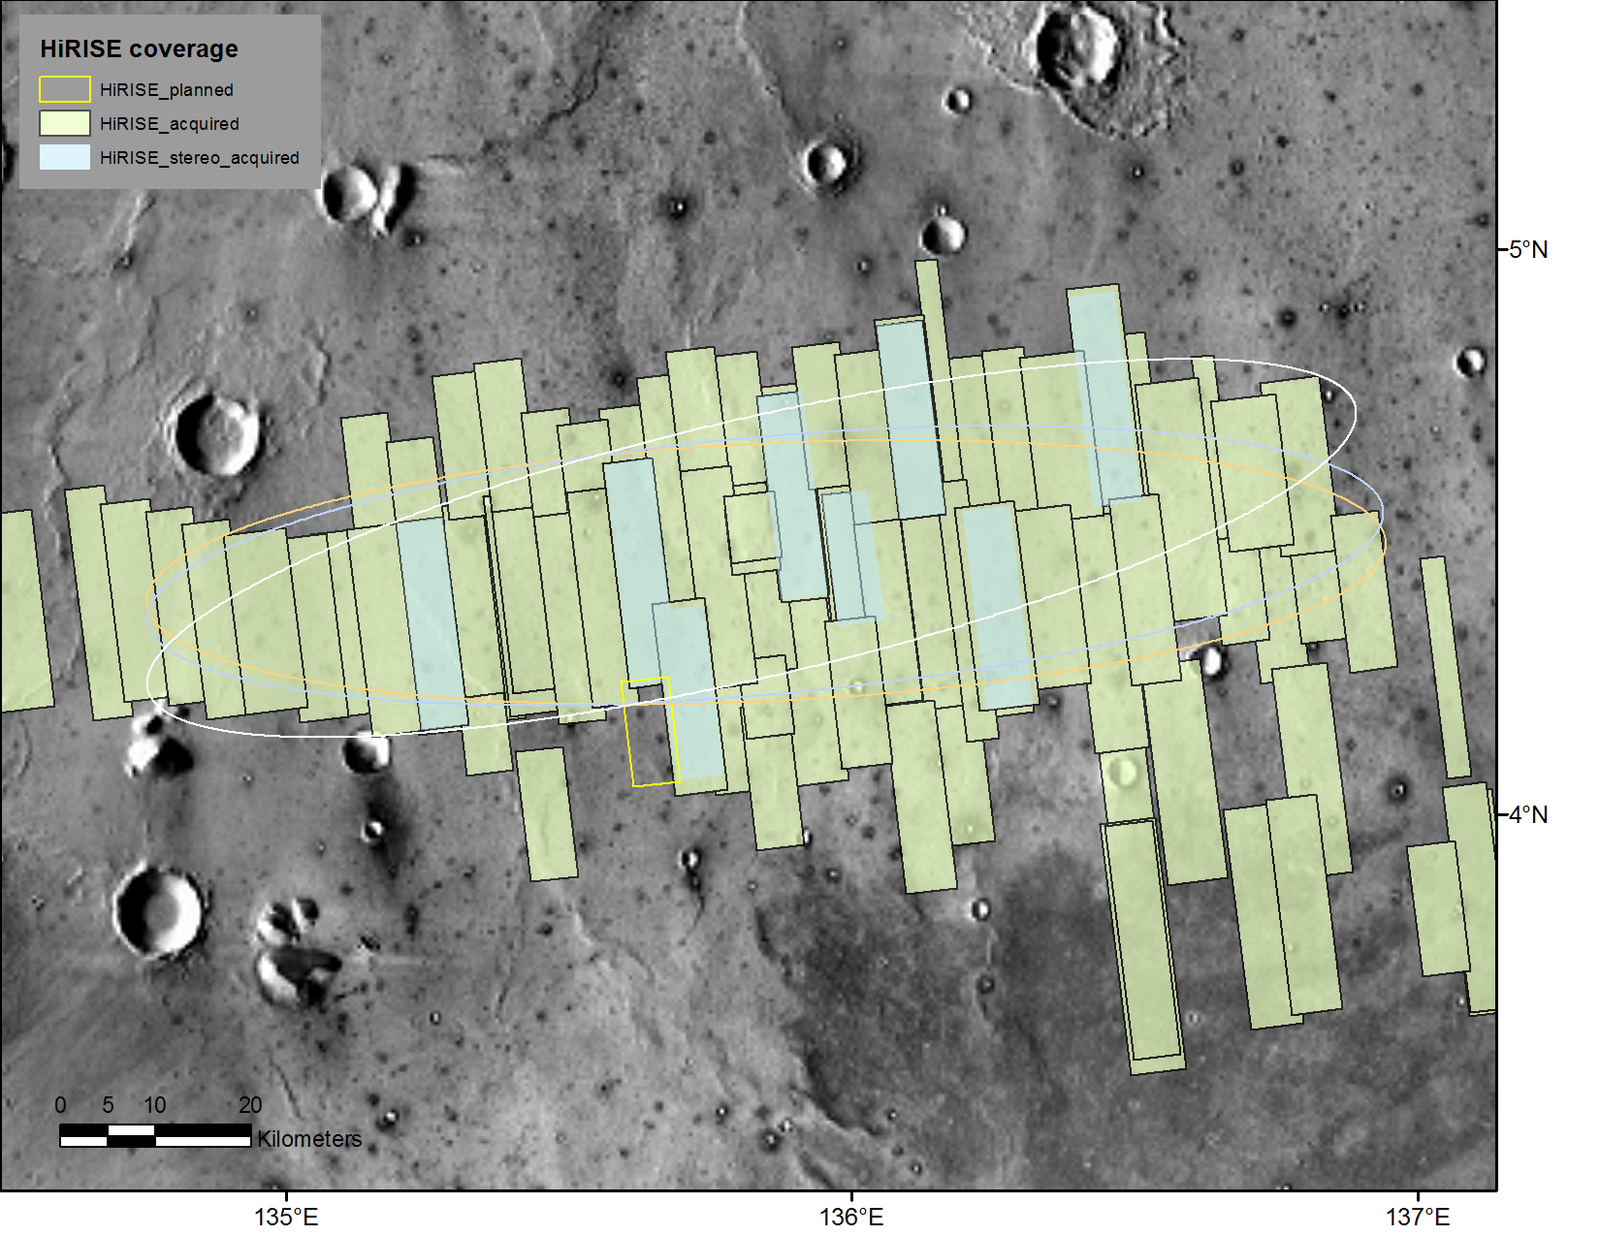 This map shows the footprints of images taken by the HiRISE camera on NASA's Mars Reconnaissance Orbiter as part of advance analysis of the area where NASA's InSight mission will land in 2018. The final planned image of the set will fill in the yellow-outlined rectangle on March 30, 2017.